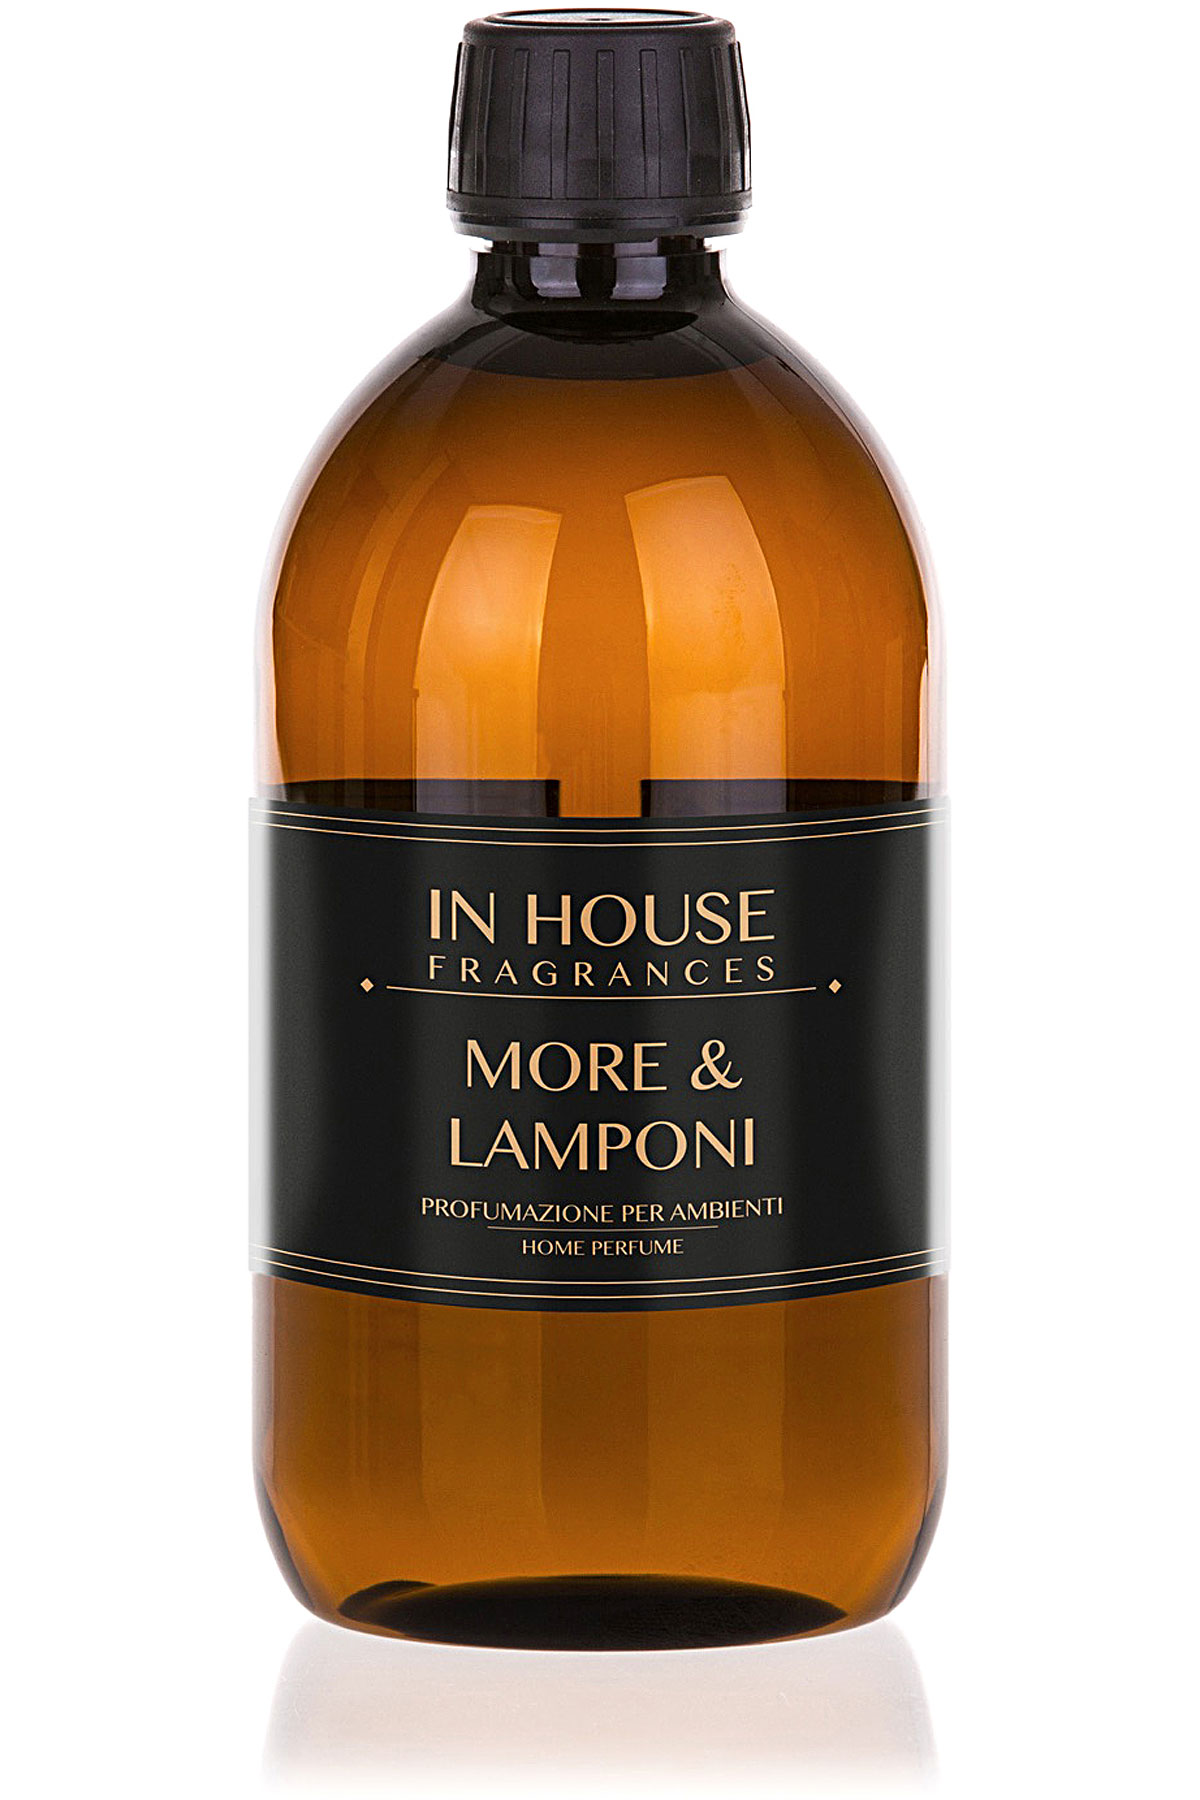 In House Fragrances Home Scents for Men, More & Lamponi - Refill - 500 Ml, 2019, 500 ml